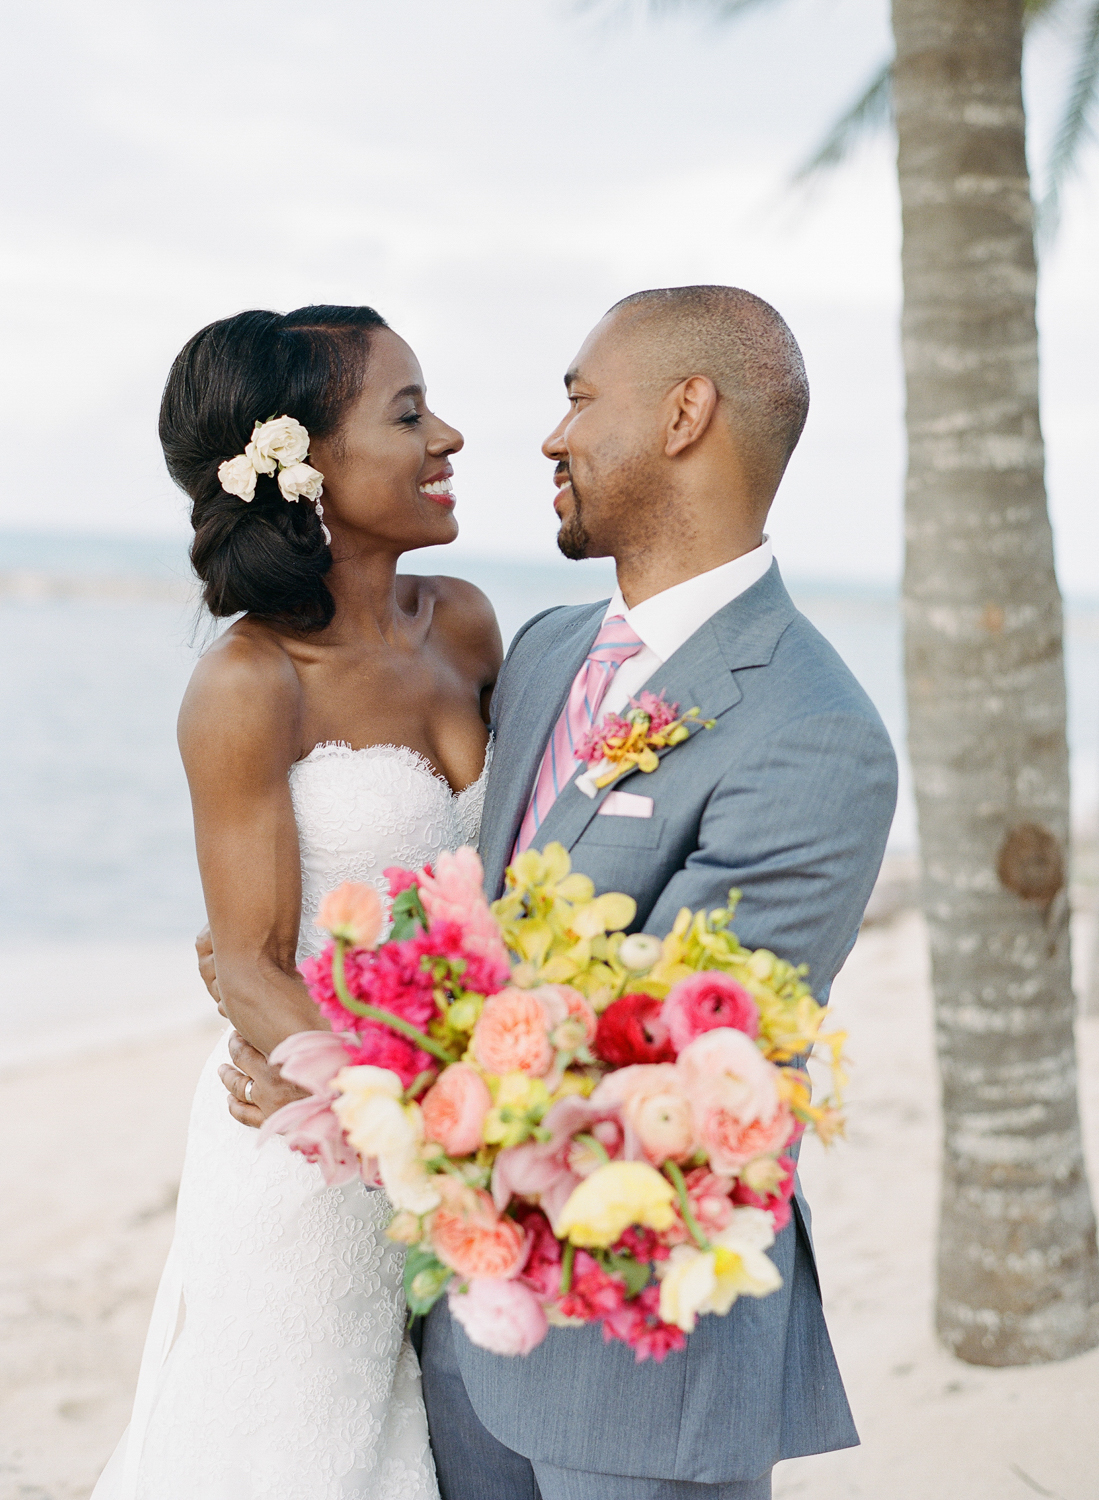 Bride and groom in love after the wedding in Montego Bay, Jamaica; Sylvie Gil Photography